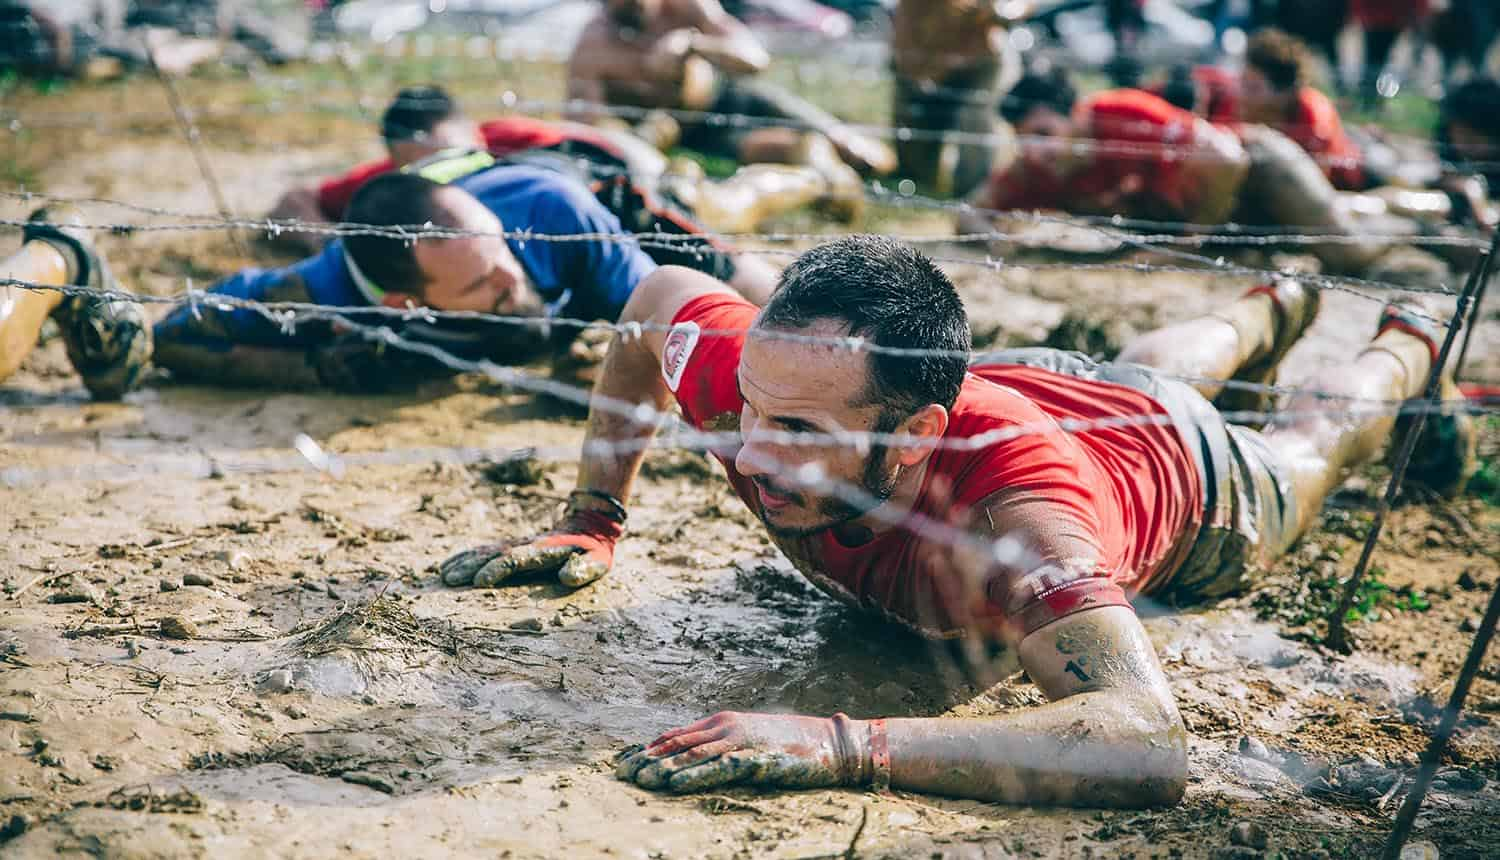 Participants in extreme obstacle race crawling under barb wires showing the difficulty of navigating the privacy minefield